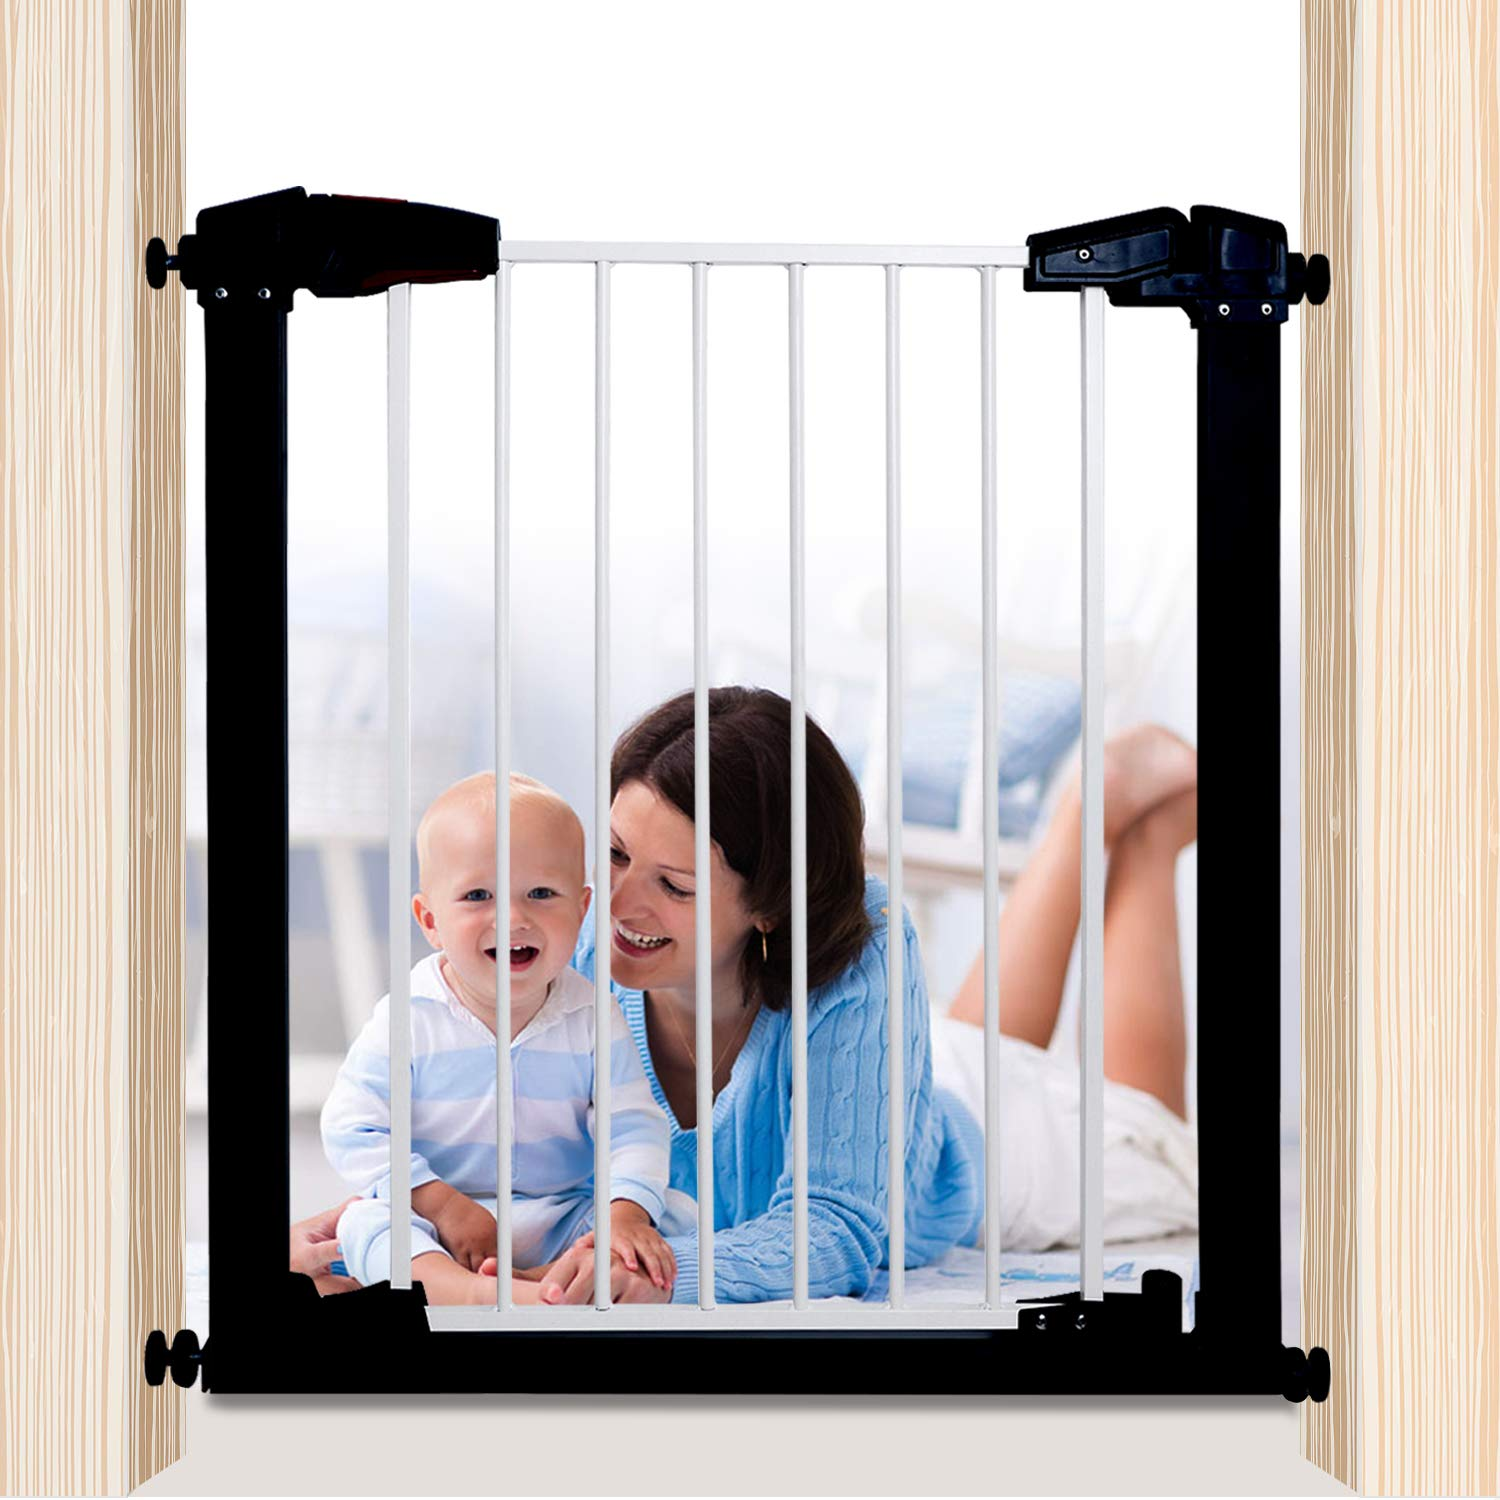 Luuoz Baby Gate Pet Gate Swings Both Ways, 40.55-Inch Retractable Baby Gate, Extra Wide Walk Thru Gate, Includes 8-Inch Extension Kit, Silver Grey